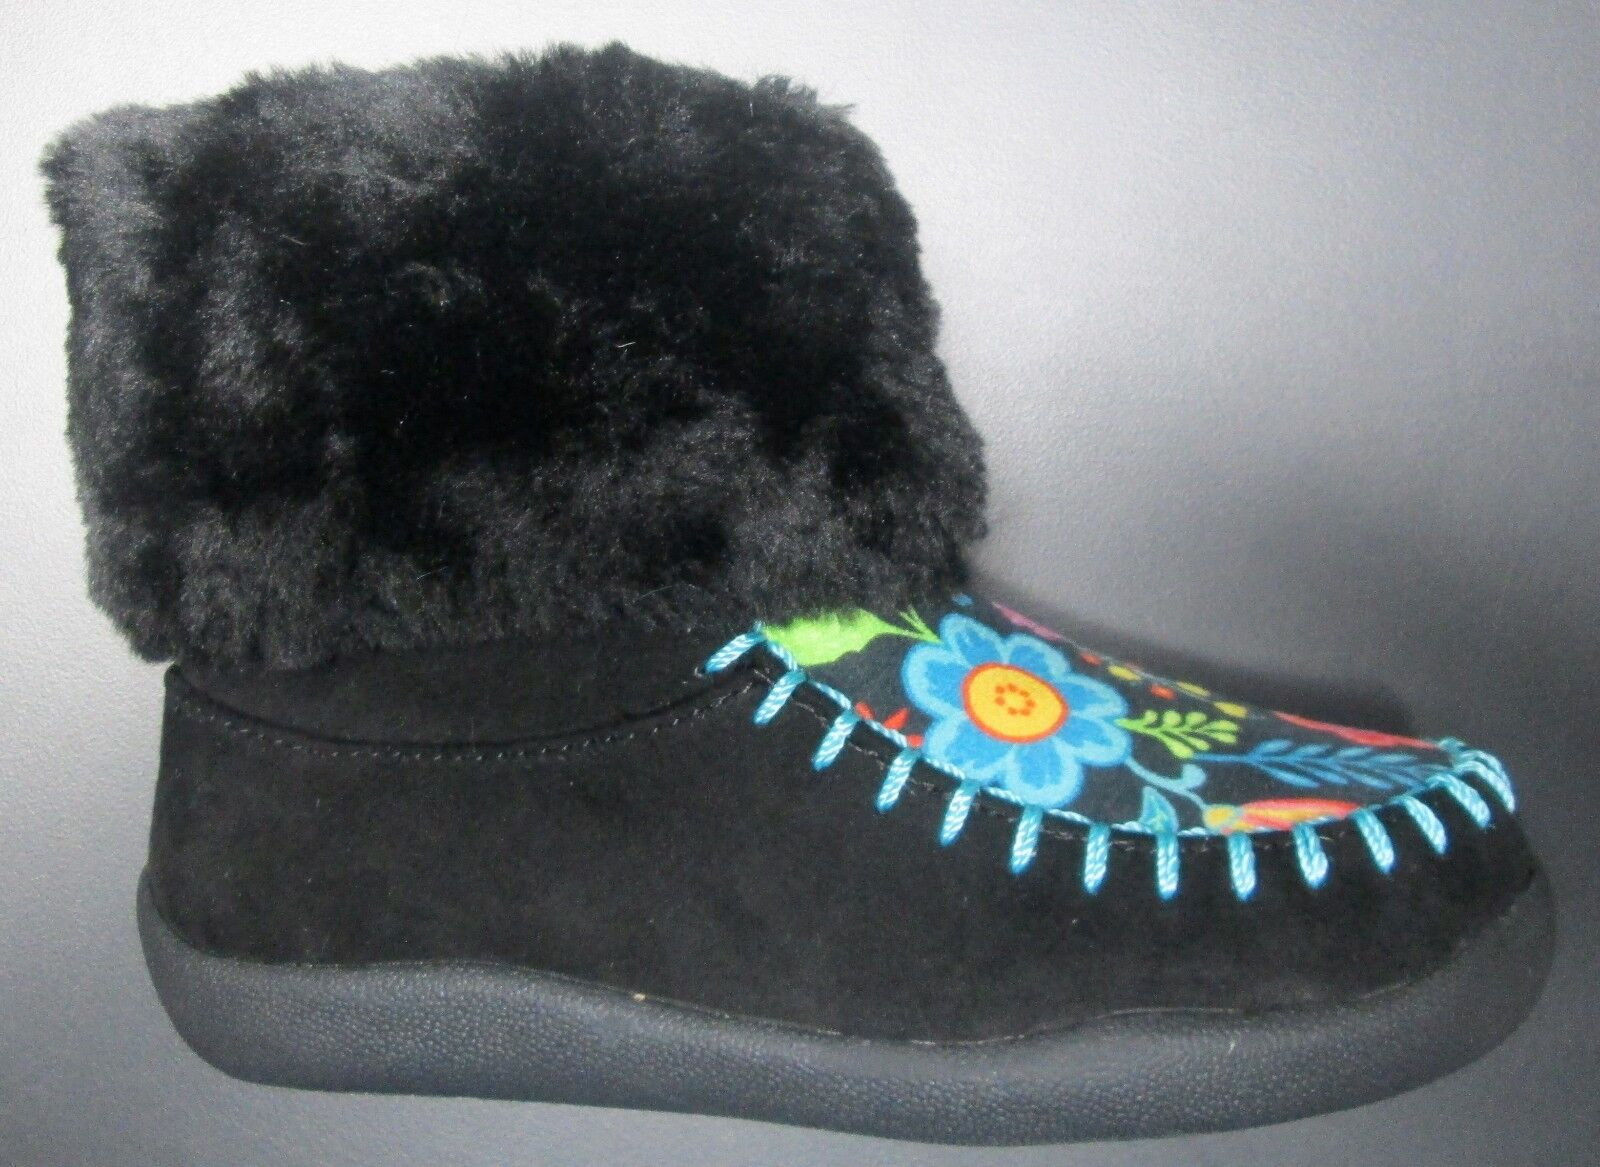 NEW TODDLER GIRL CHOOZE SHOES BLACK SUEDE/FUR TRIMMED BOOTS w/FLOWERS SZ 9 1